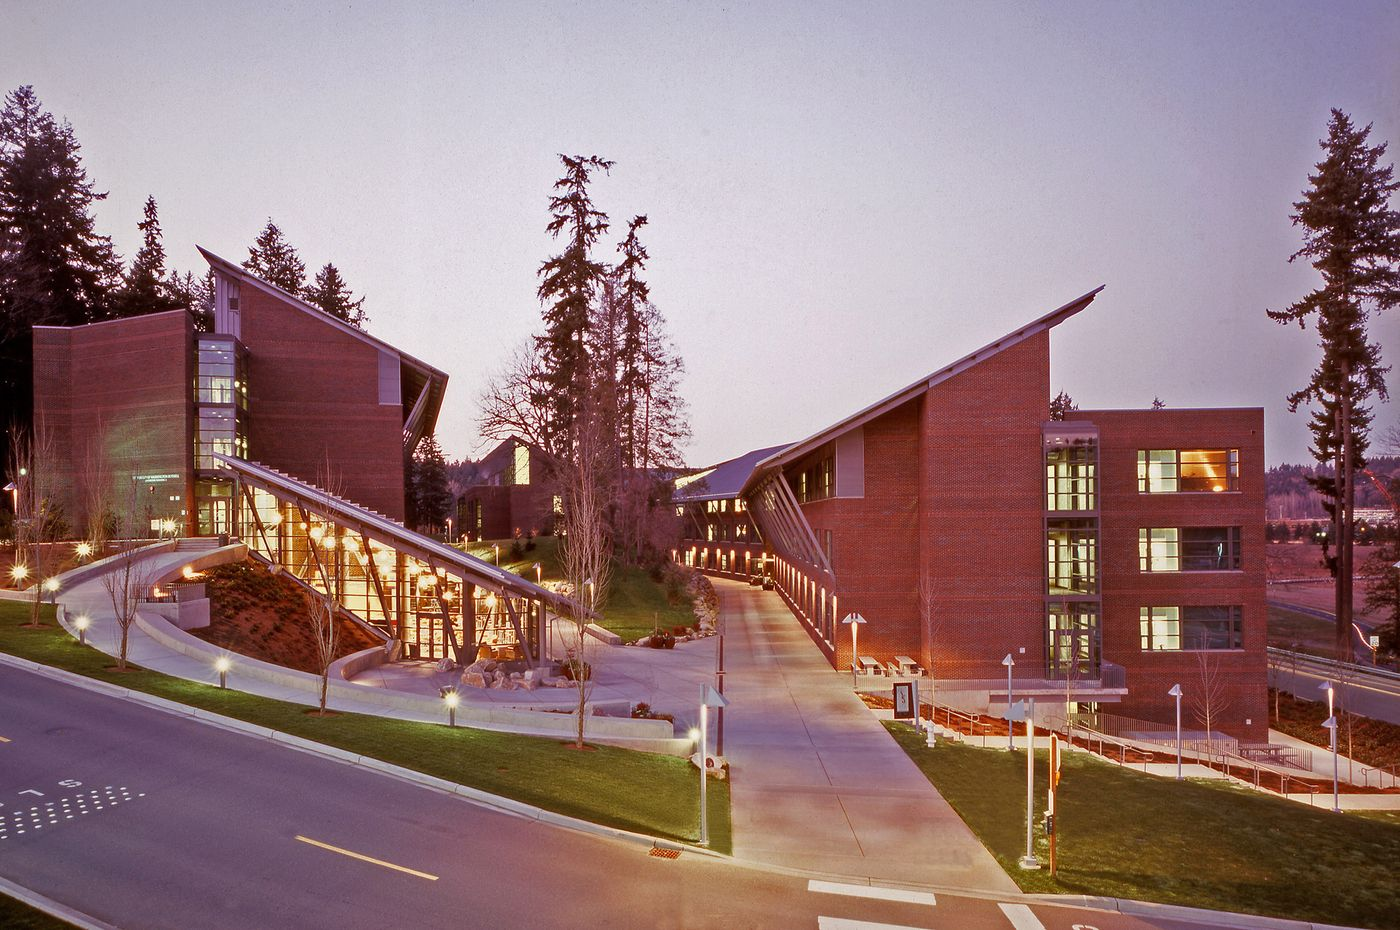 The southern view of the UW Bothell Campus